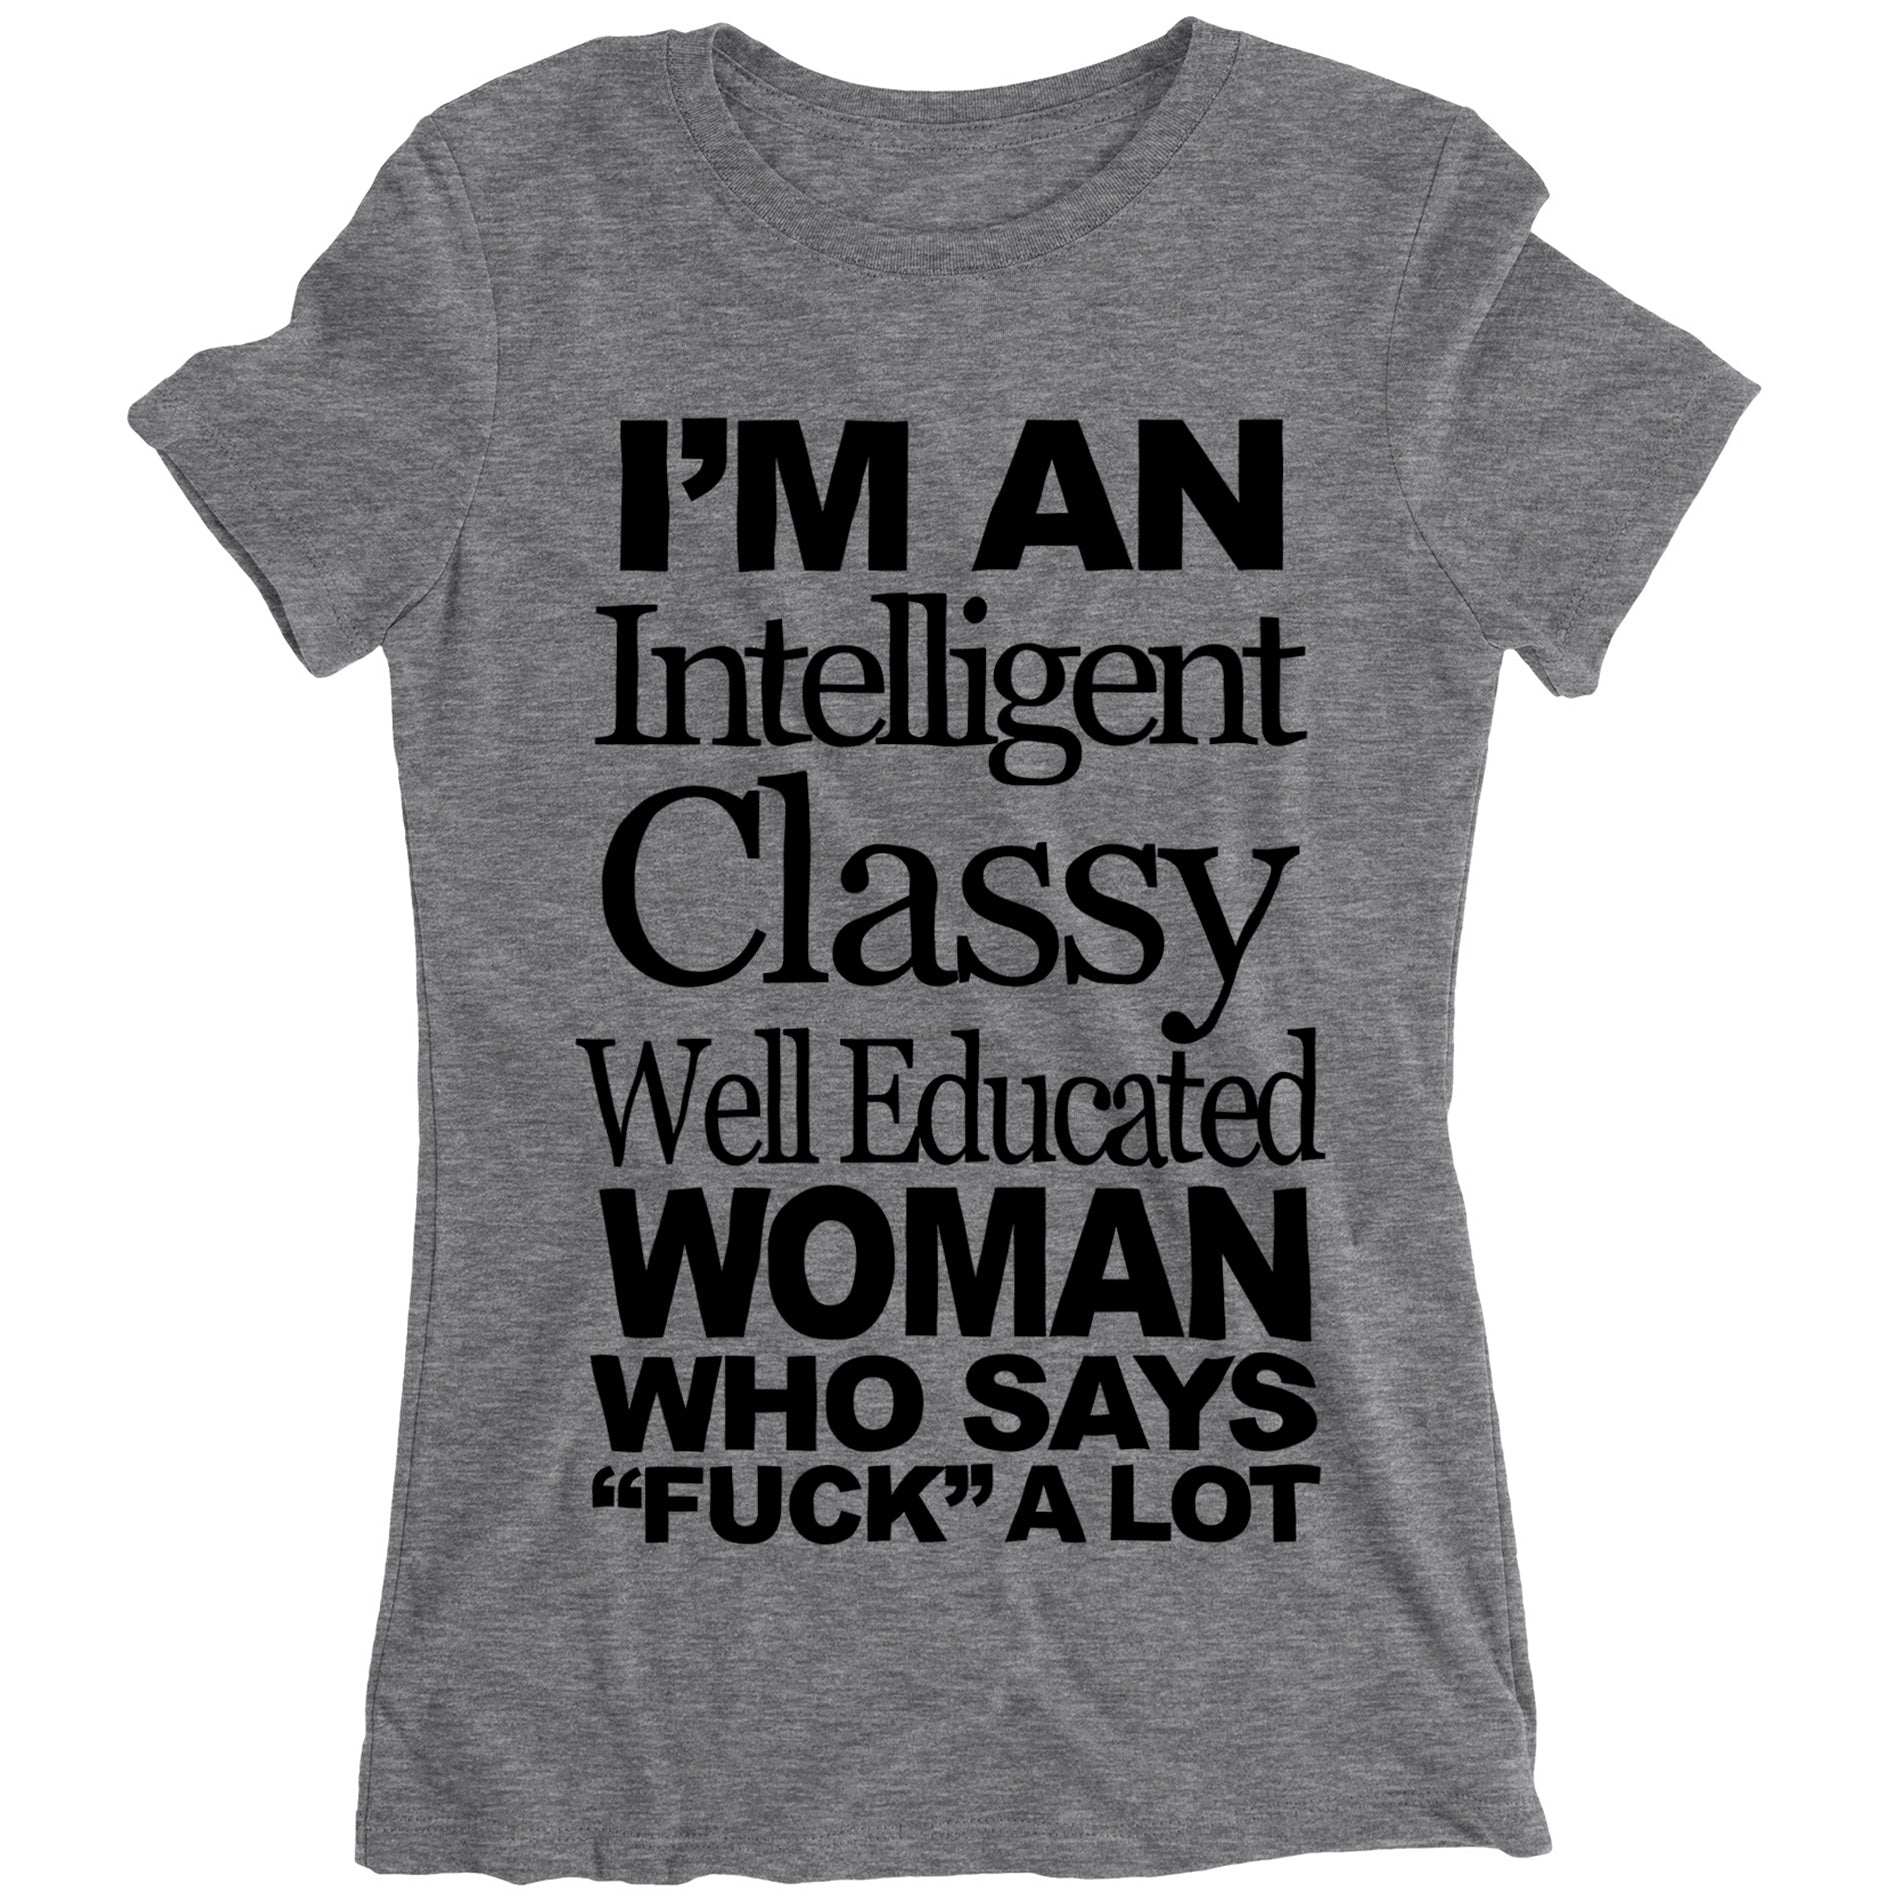 I'm An Intelligent Classy Well Educated Woman